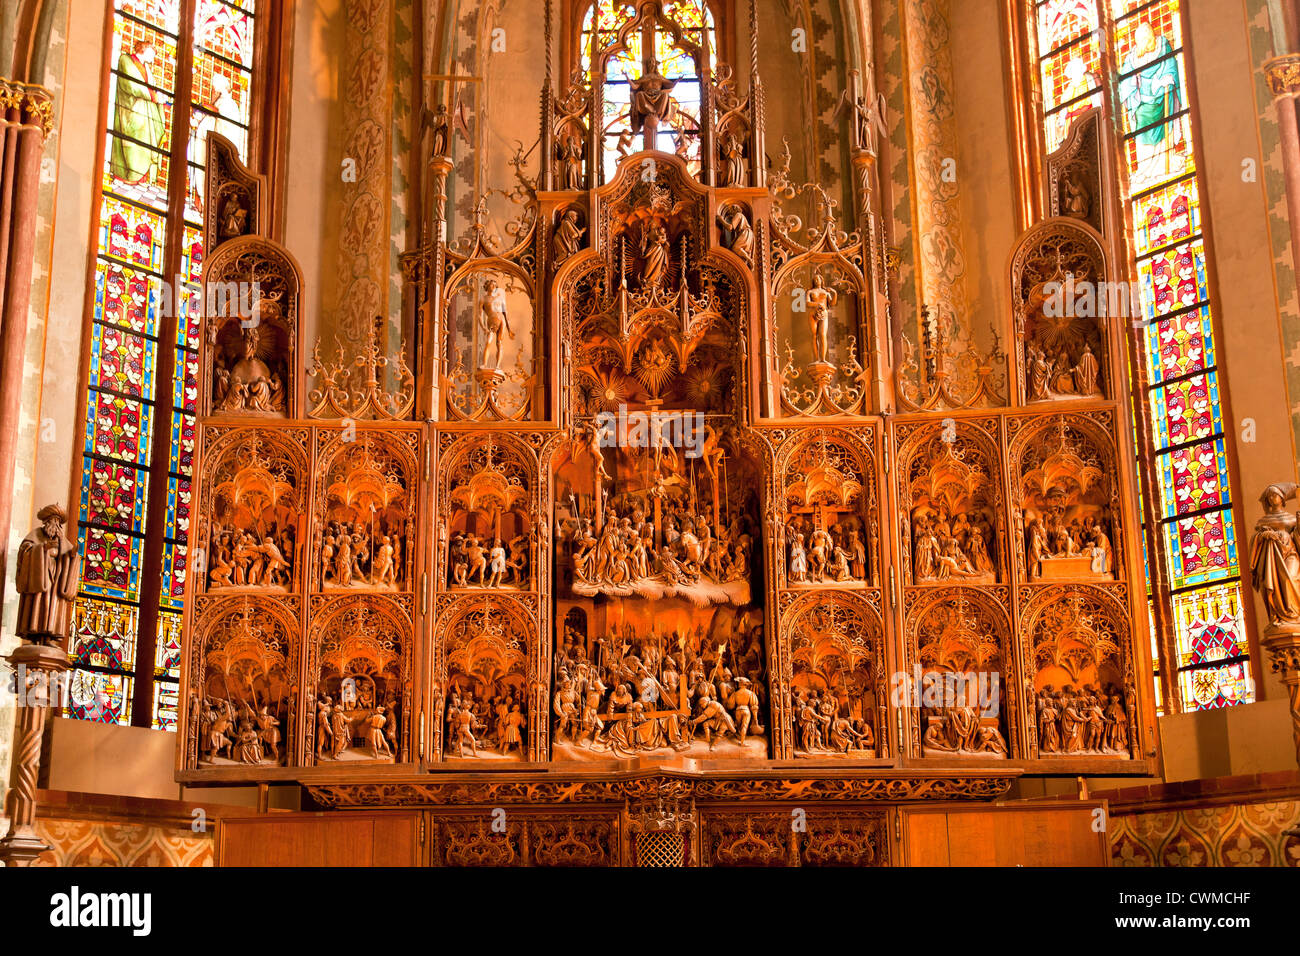 the altar, carved by Hans Brüggemann from 1514 to 1521 inside the Schleswig Cathedral, - Stock Image